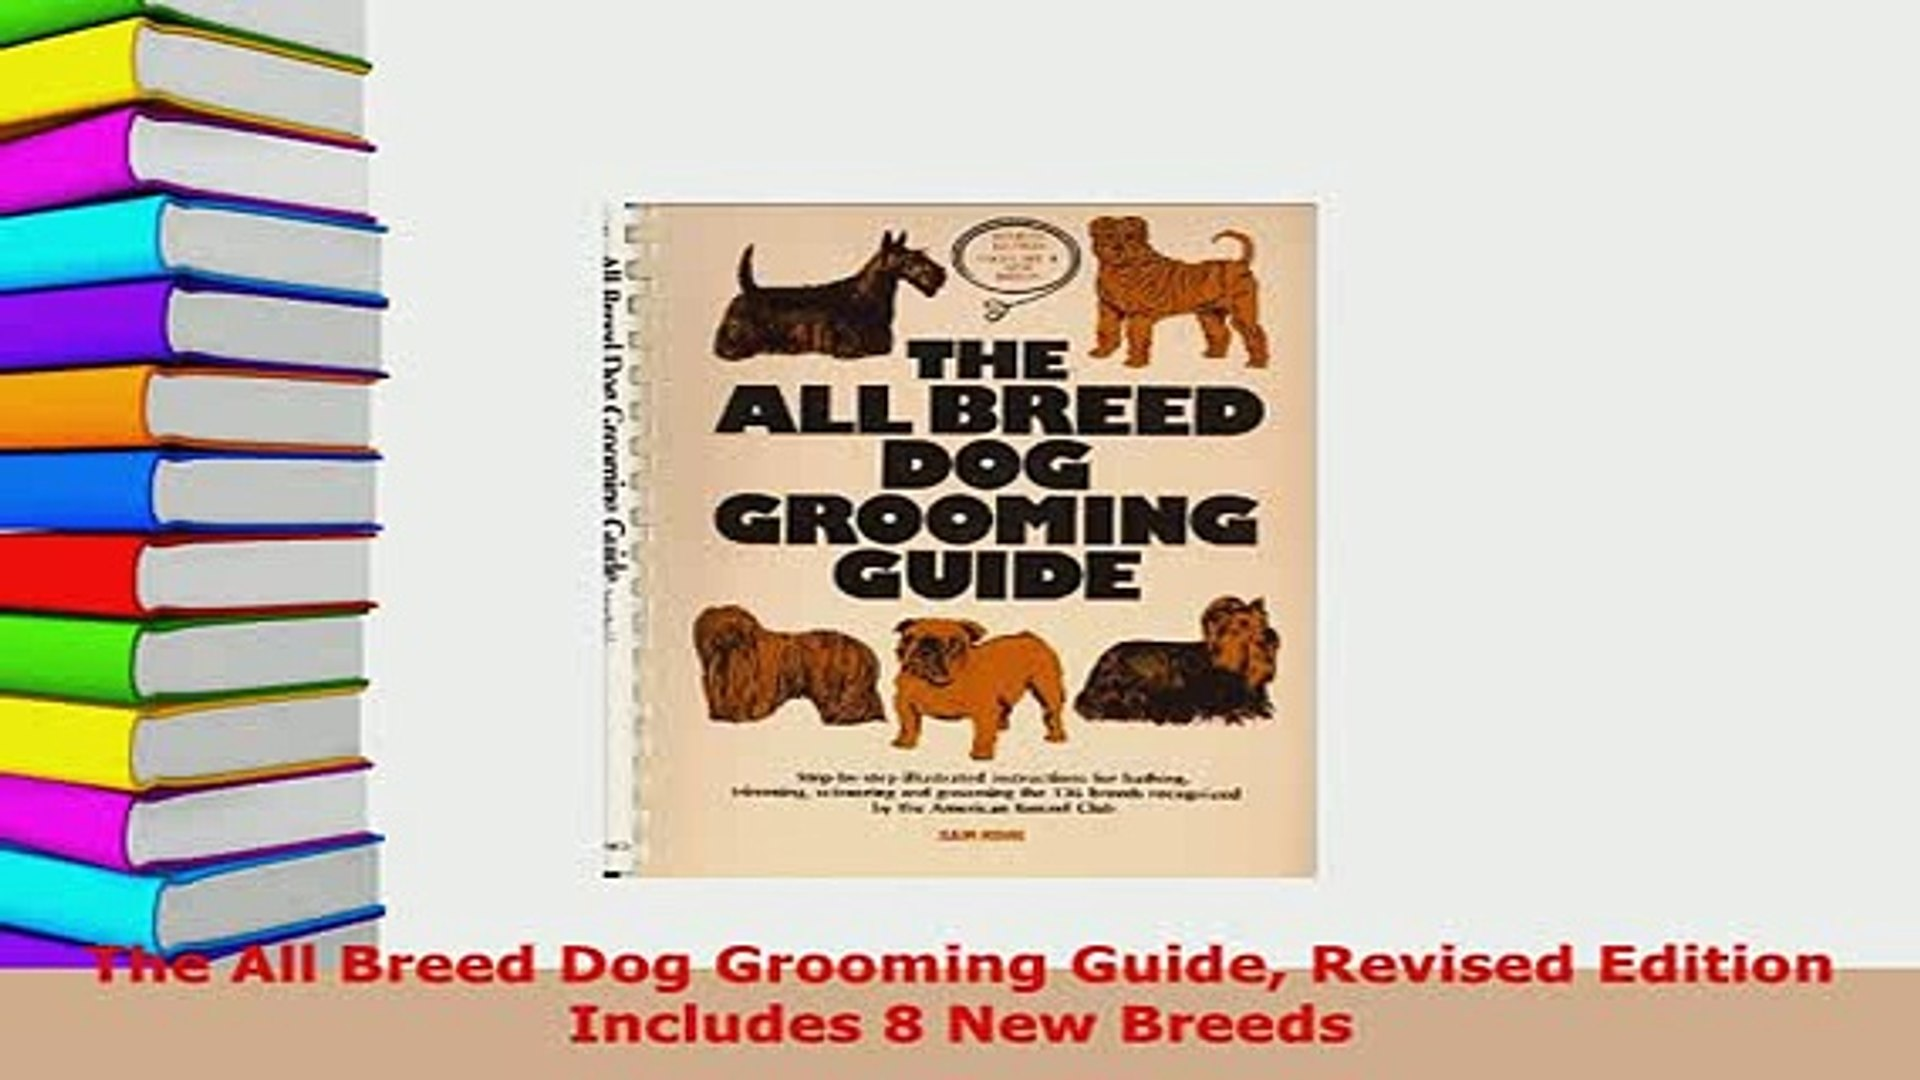 The stone guide to dog grooming for all breeds ebook | ben stone.